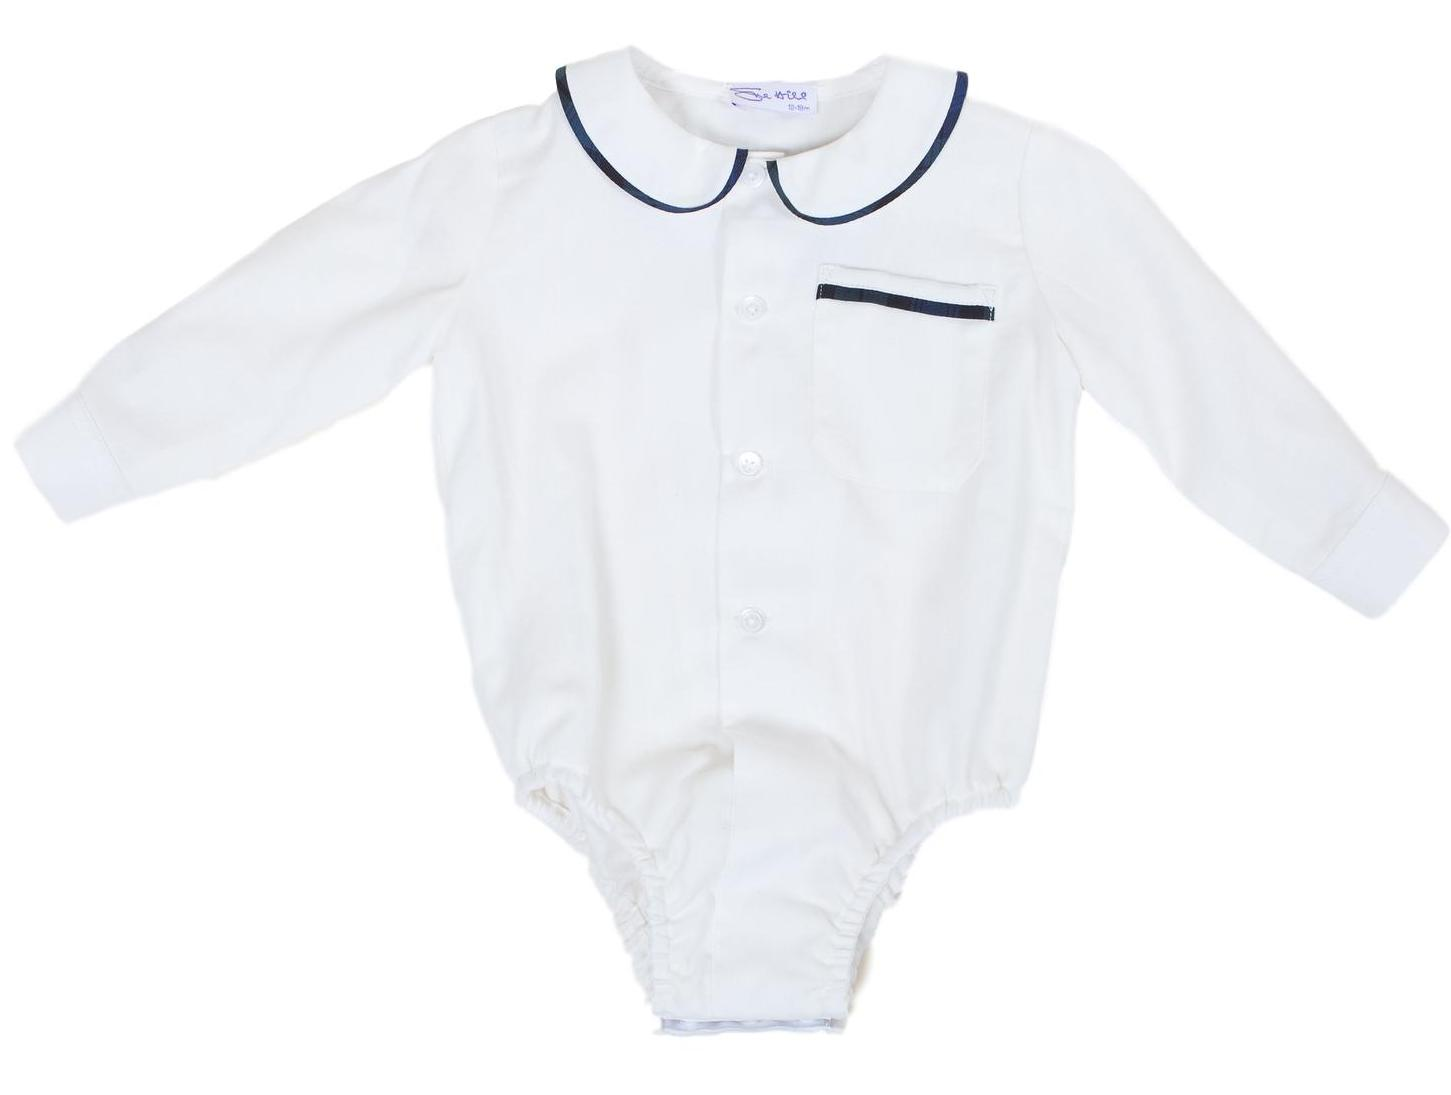 Sue hill baby boy shirt onesie